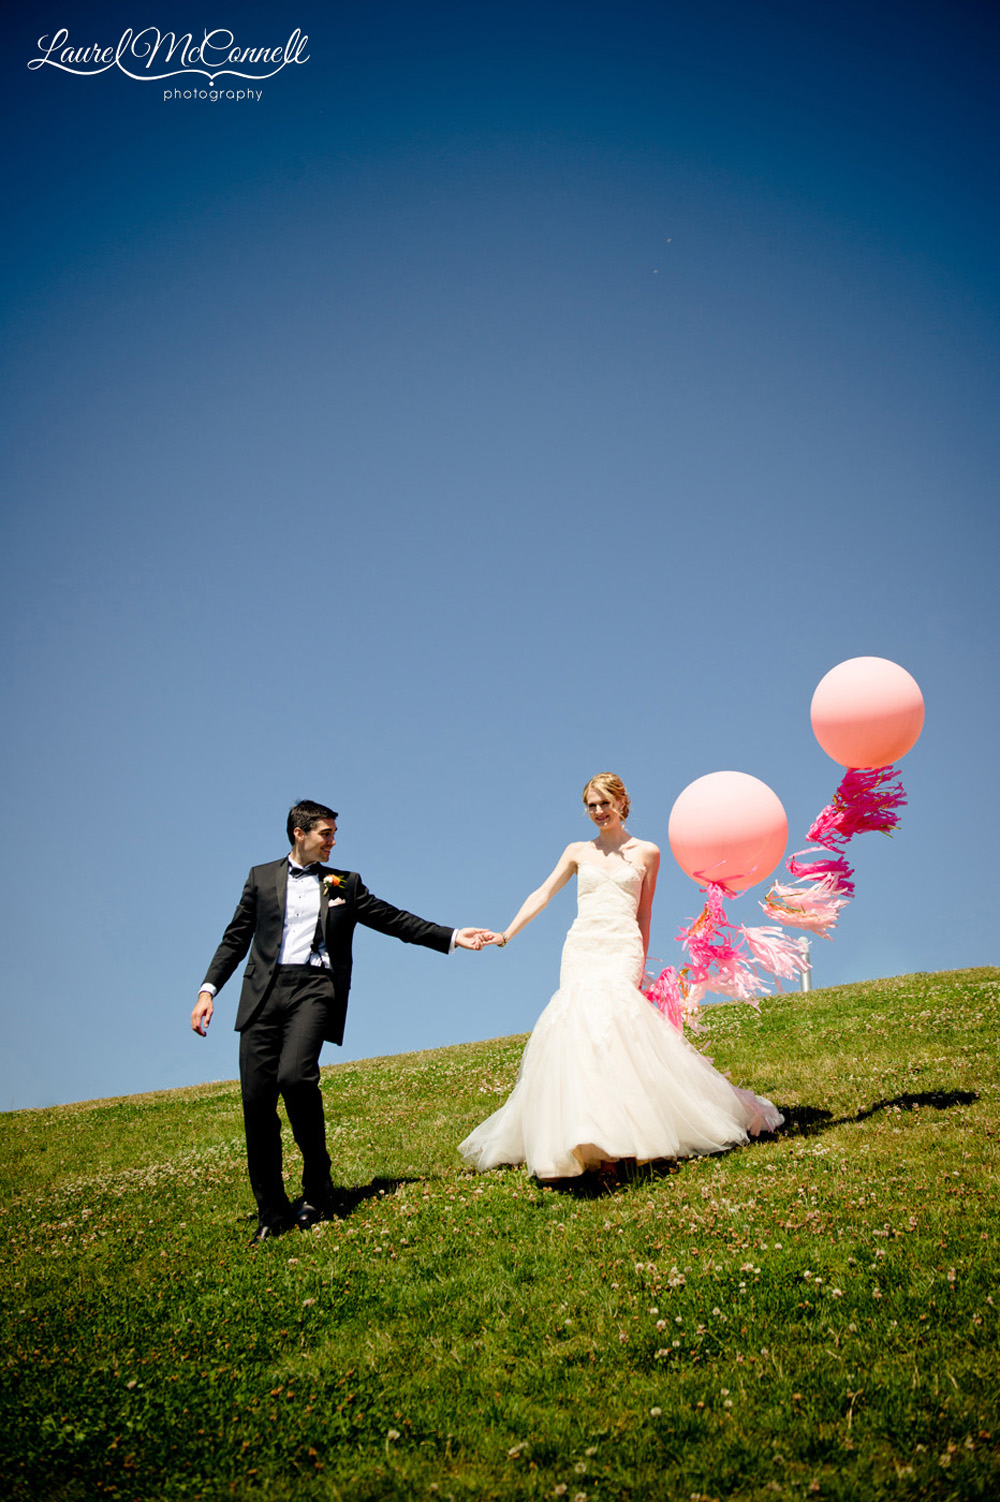 Sunny wedding portrait of bride and groom with geronimo balloons.